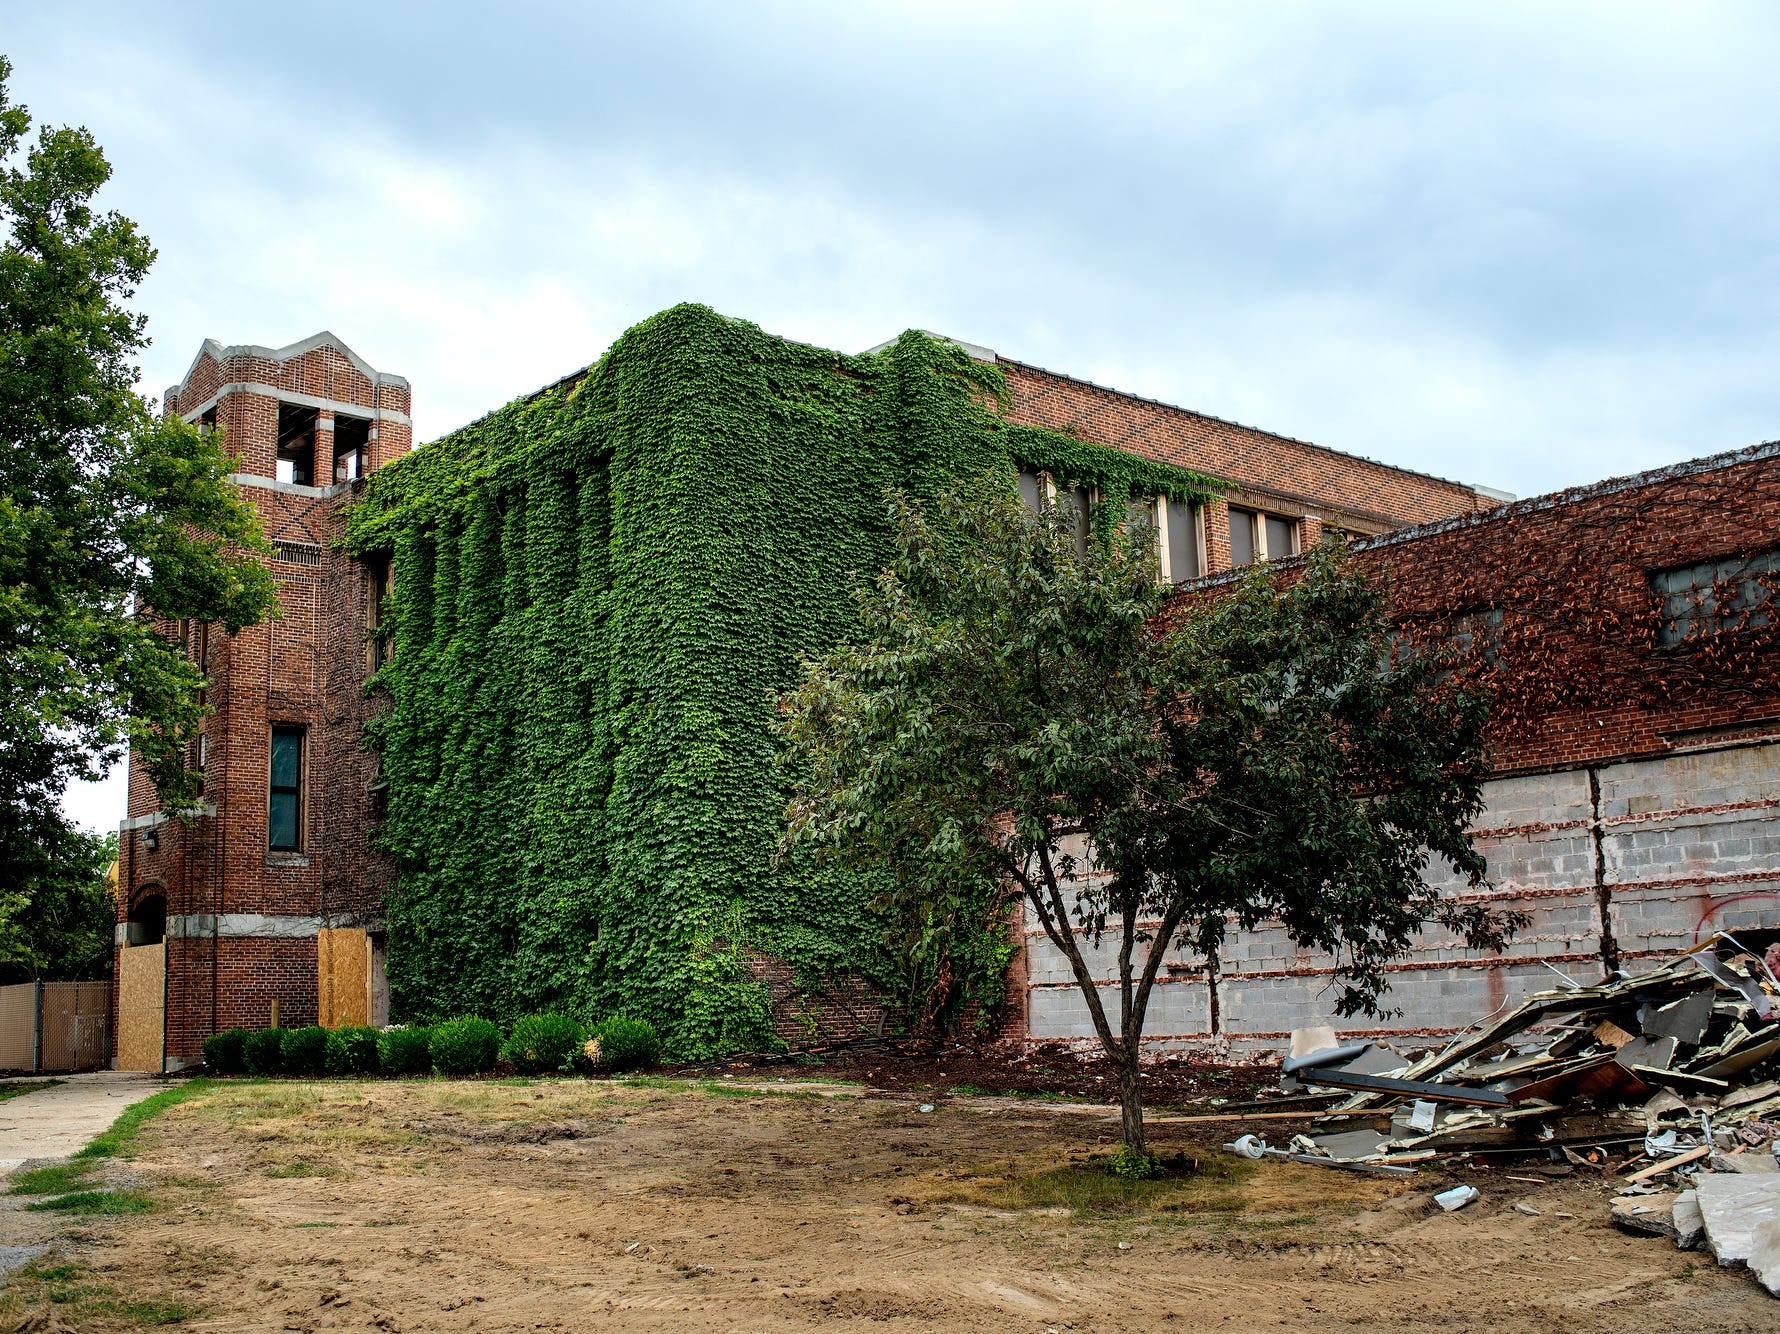 The former Dansville Middle School, photographed on Monday, July 23, 2018, is being demolished in Dansville. The building is being razed as part of the district's 2016 millage, which is funding the demolition as well as the construction of a new high school.